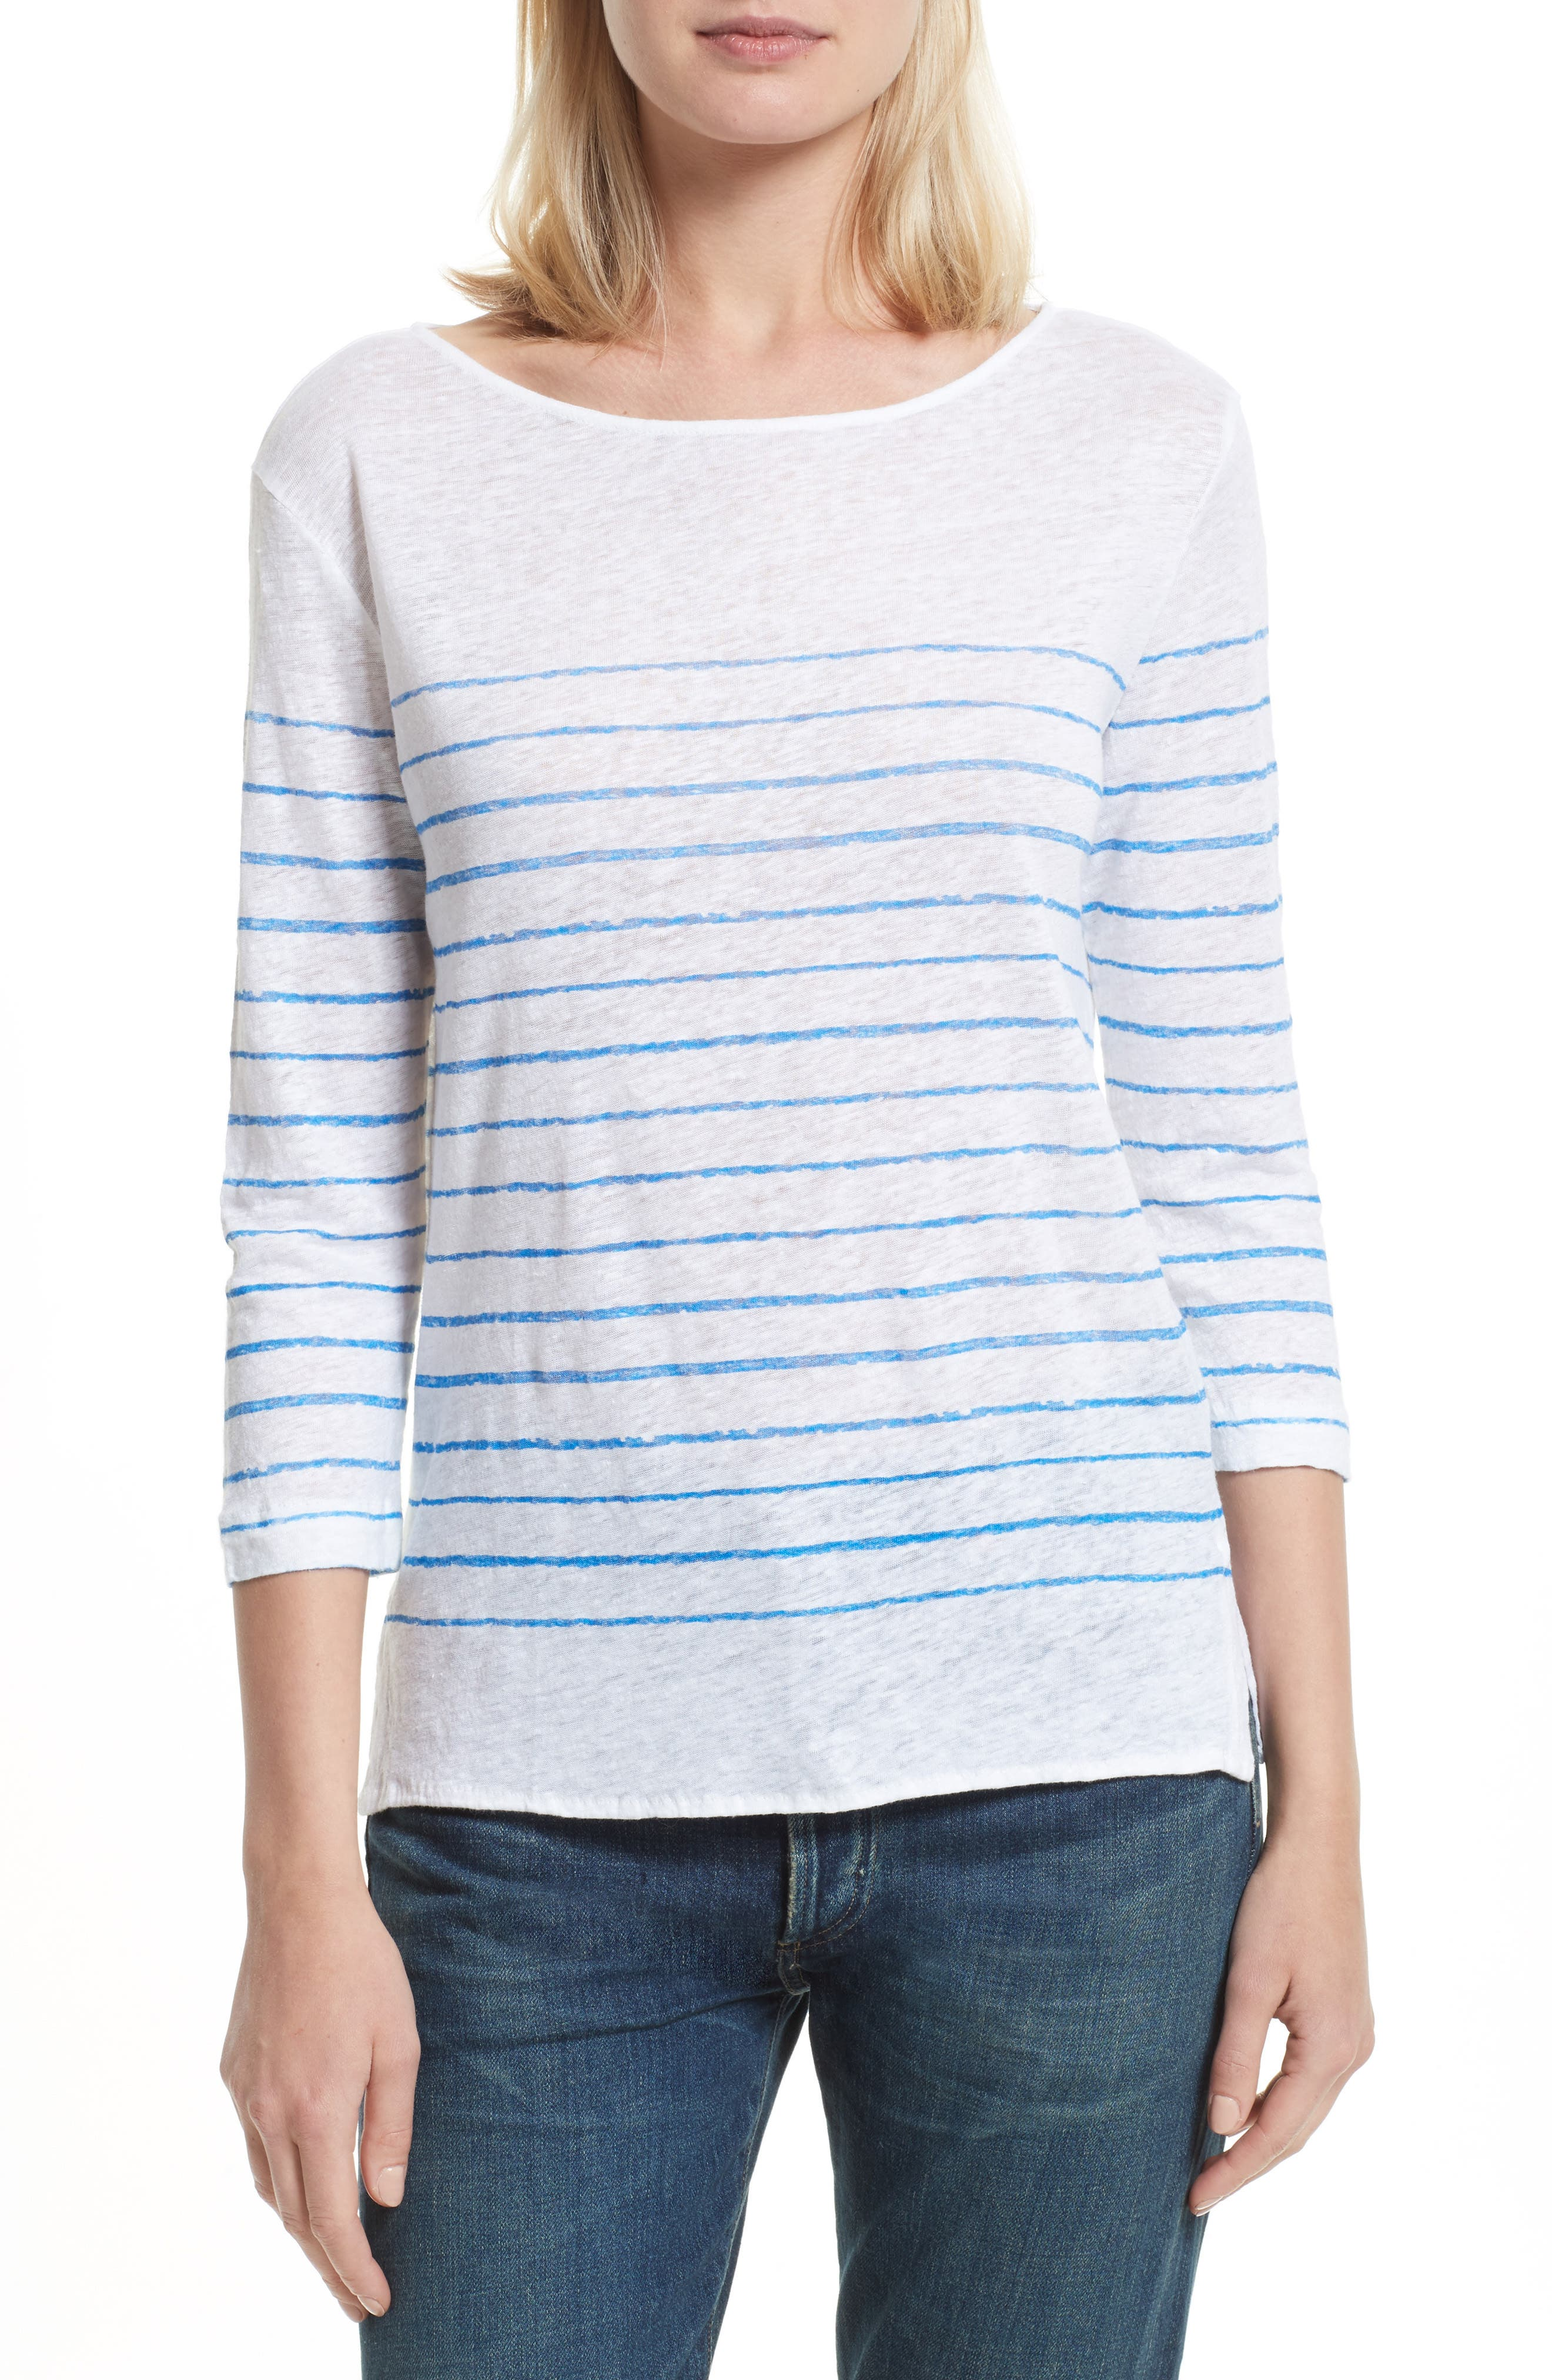 Alternate Image 1 Selected - Majestic Filatures Vintage Stripe Linen Tee